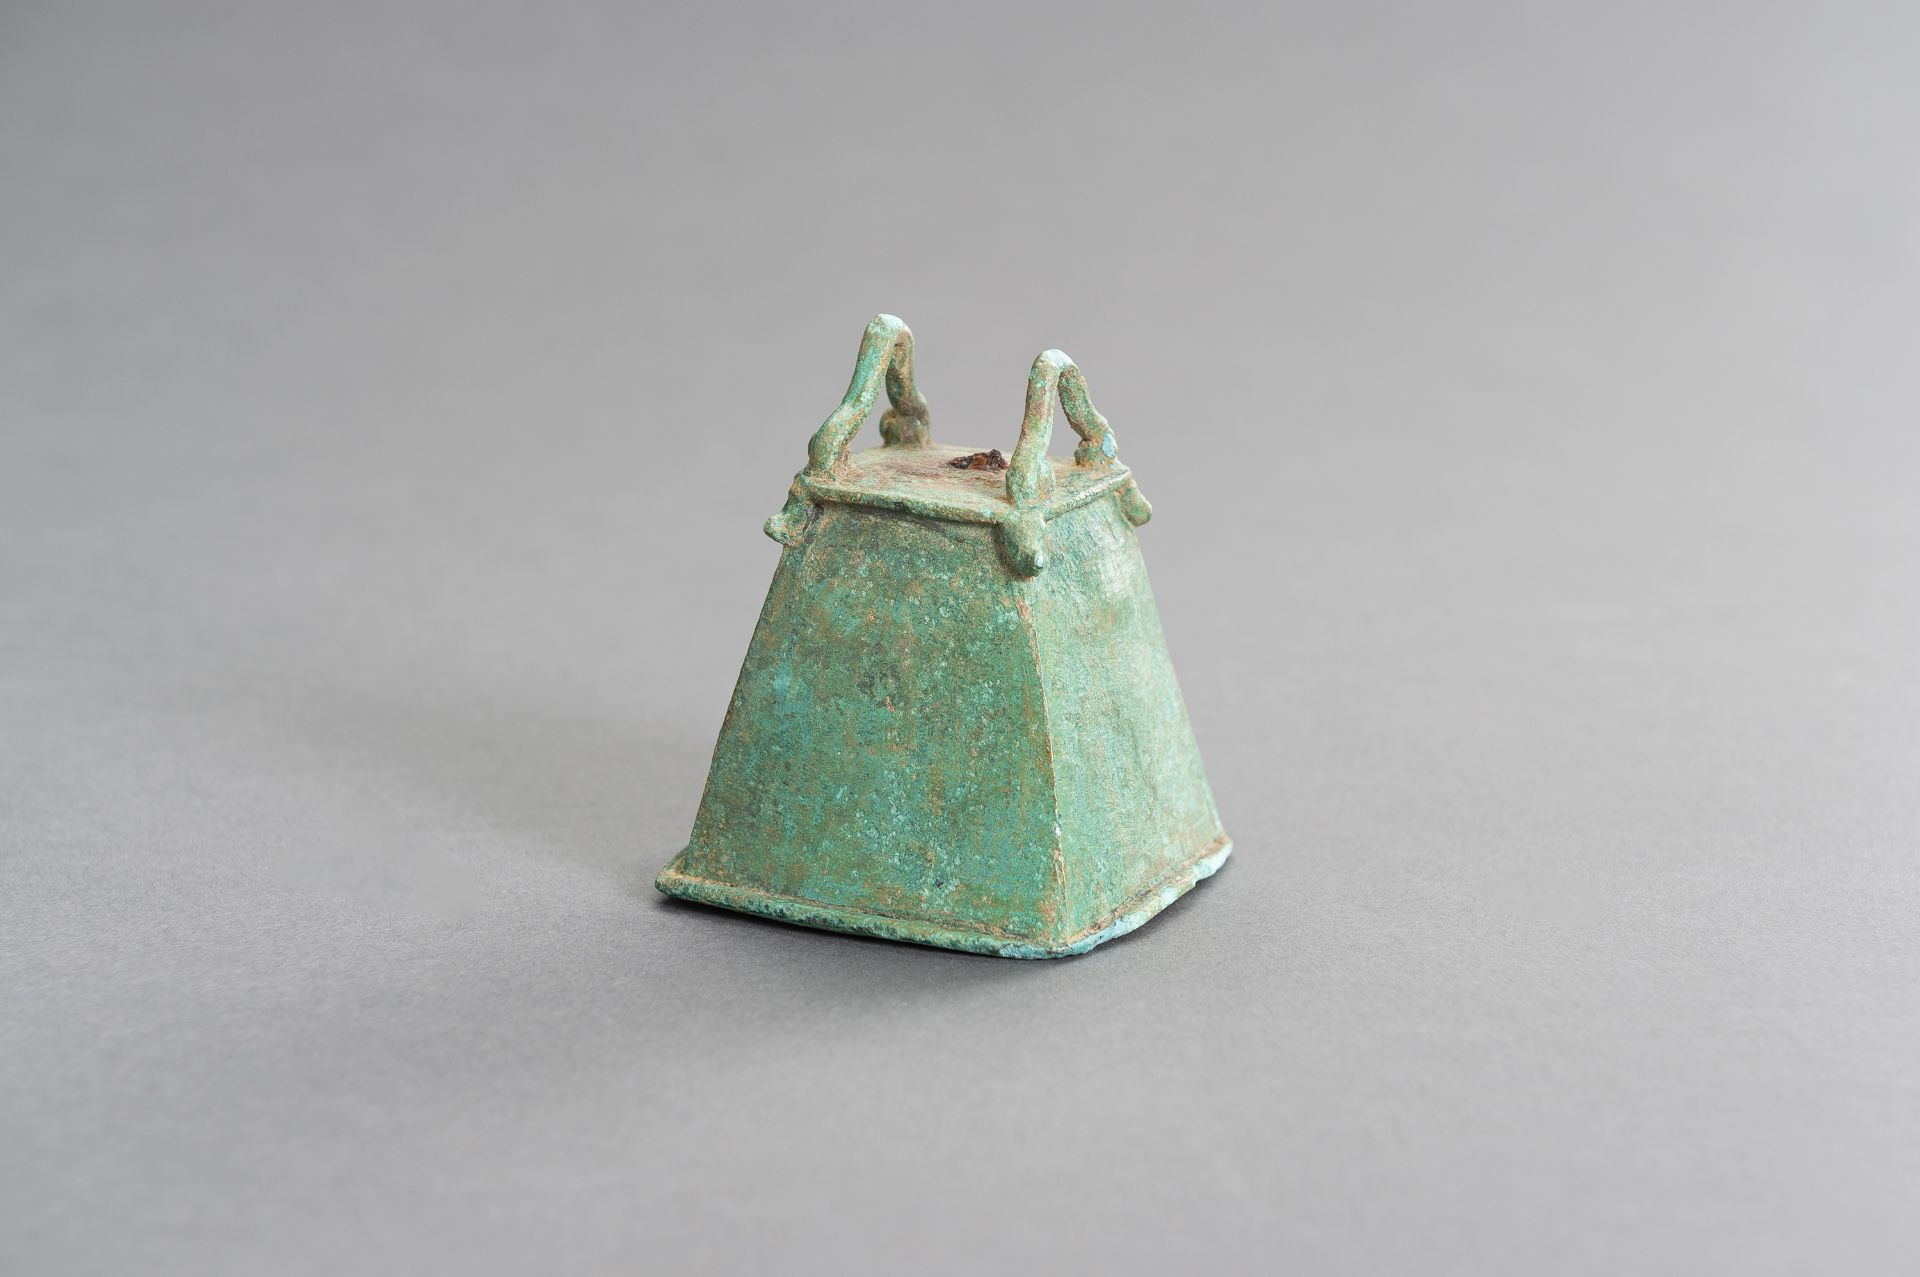 A SMALL BRONZE BELL - Image 2 of 9